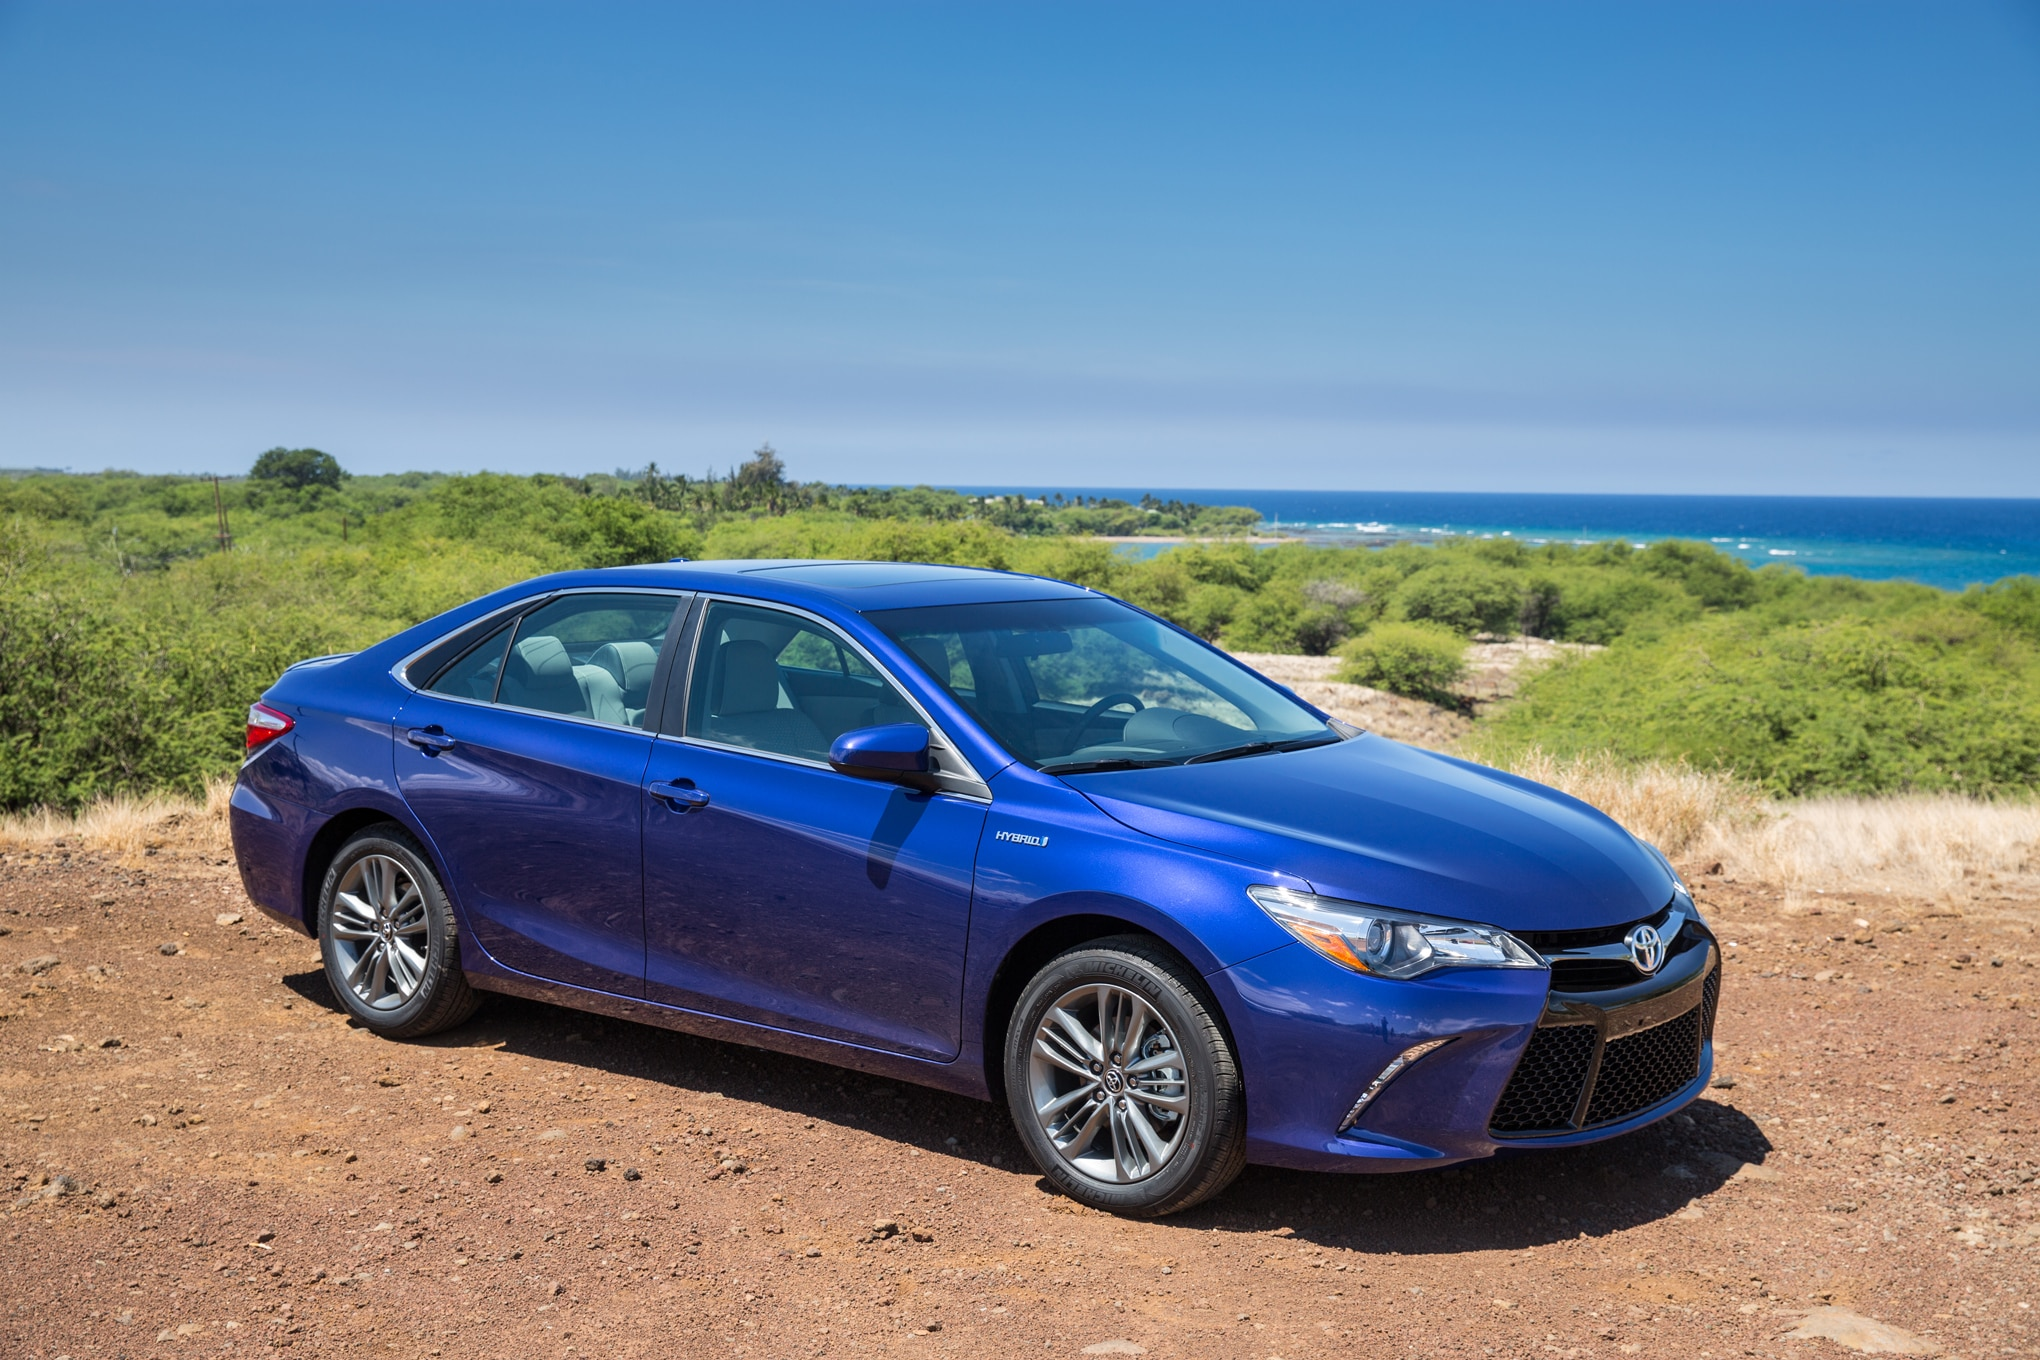 camry toyota hybrid se front system three motortrend test drive edmunds quarters specs